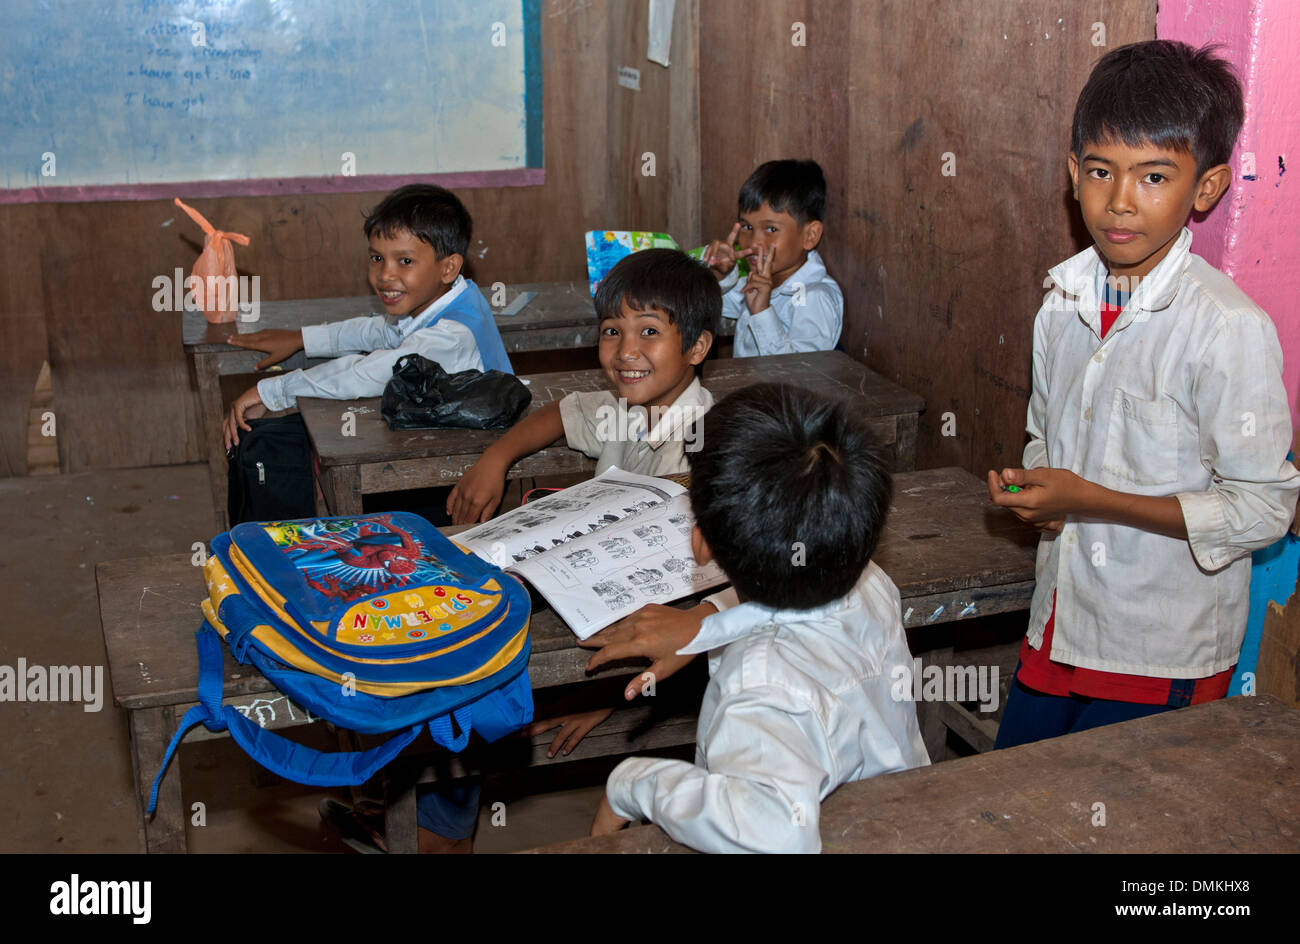 Children at a primary school, Areyskat village near Phnom Penh, Cambodia - Stock Image